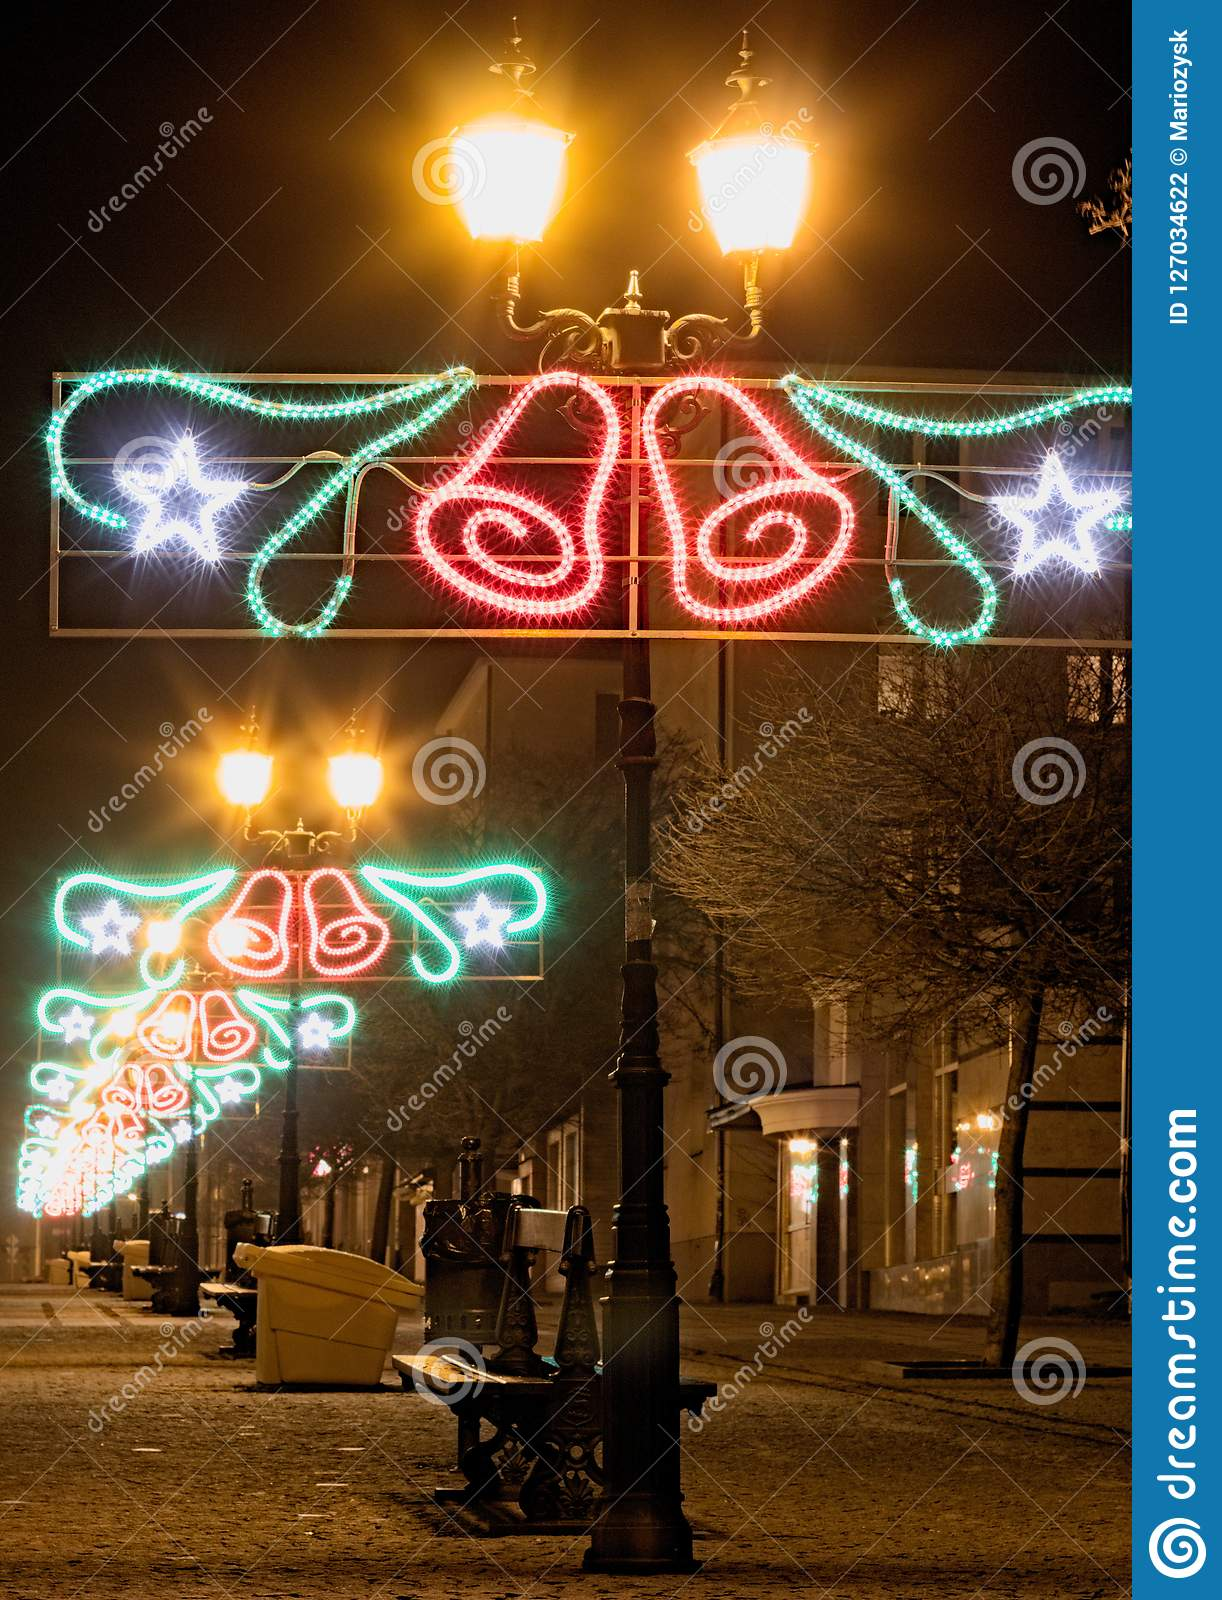 Christmas Decoration In A Street In A Small Town Stock Photo Image